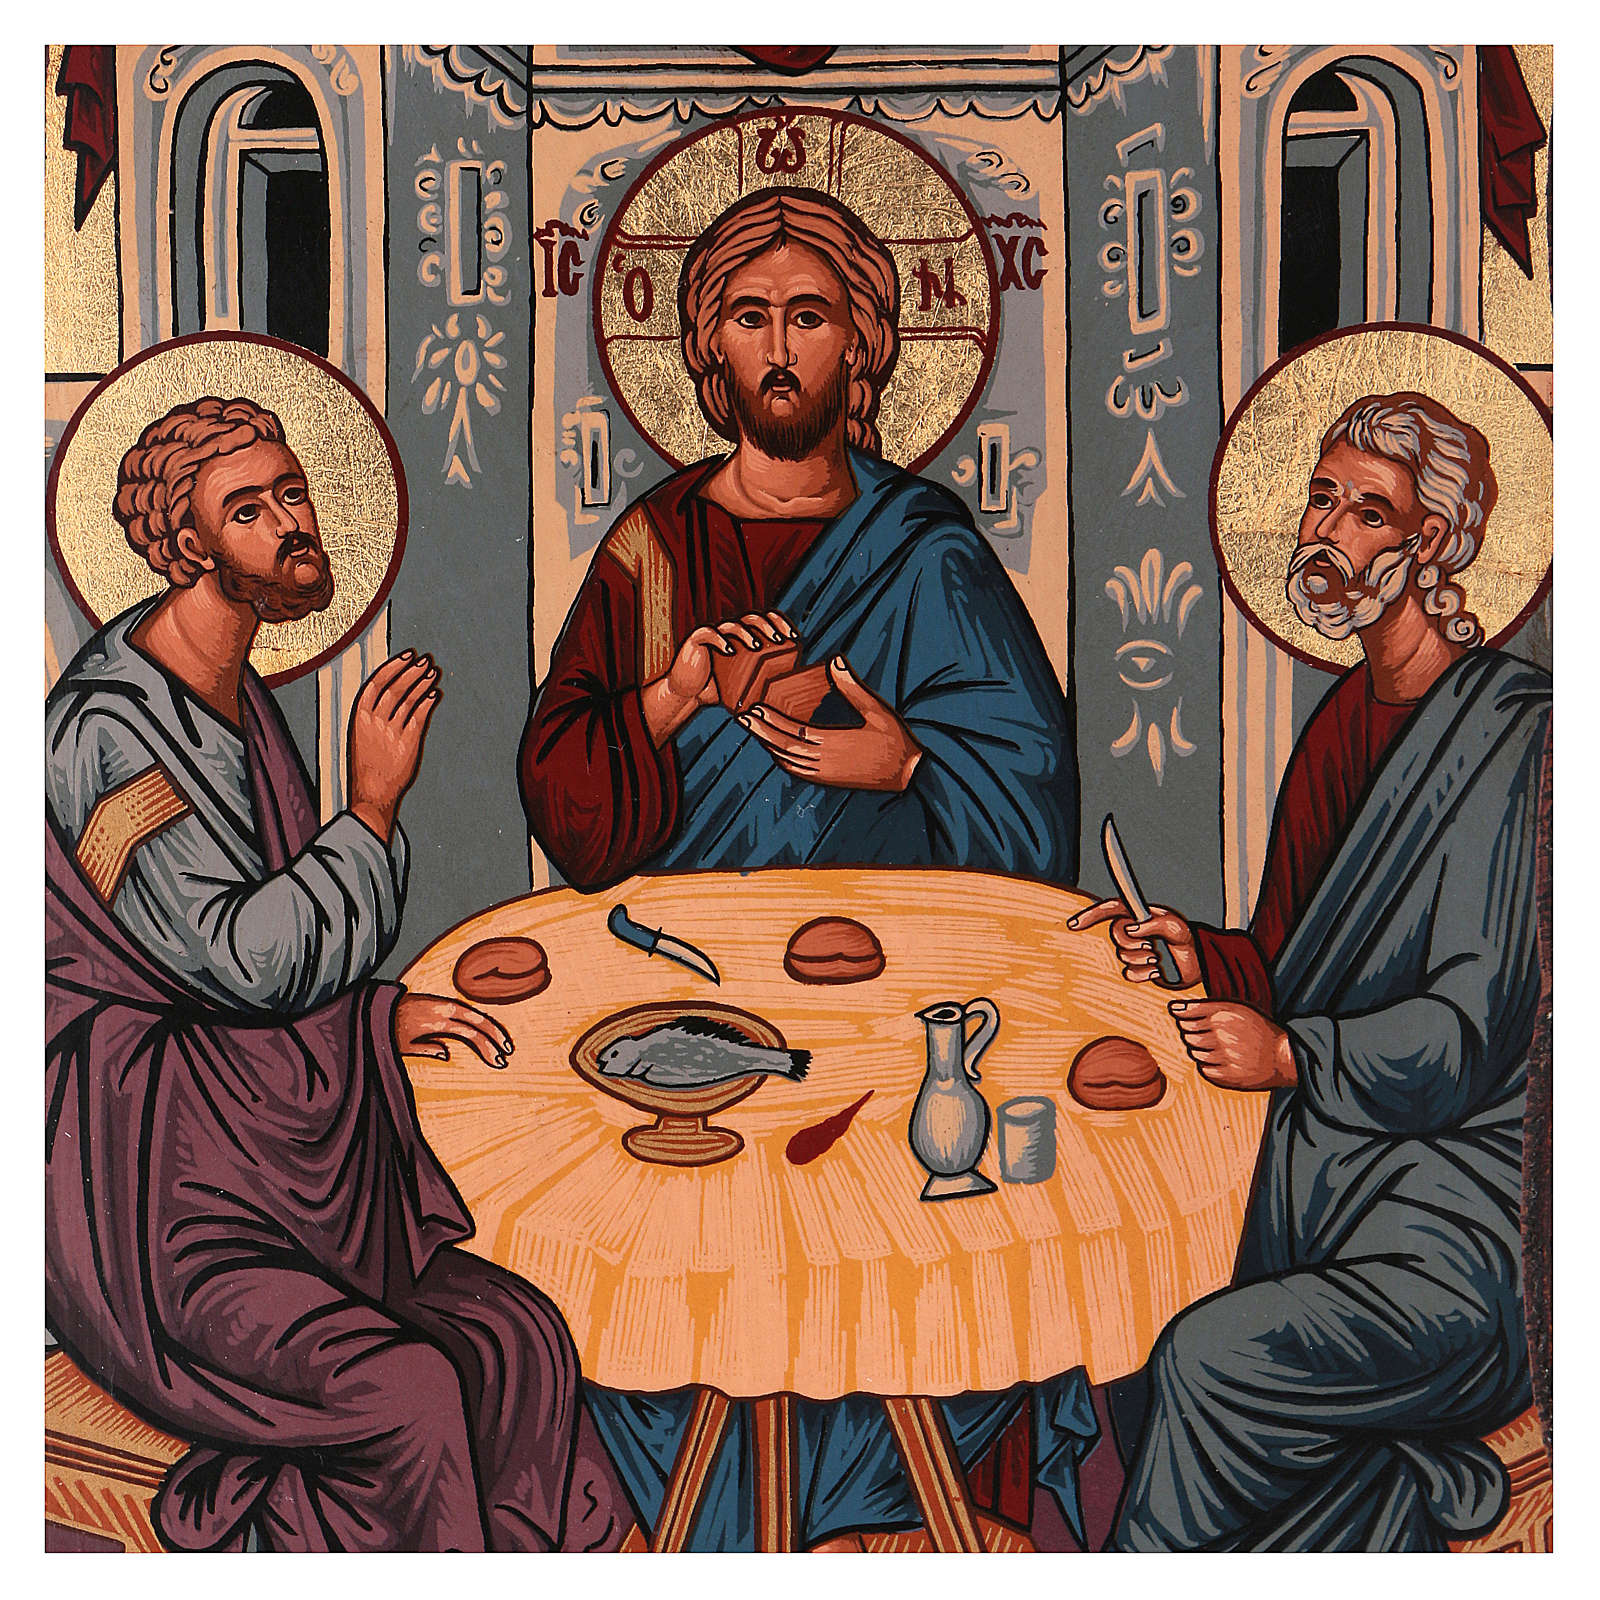 The Supper at Emmaus 4